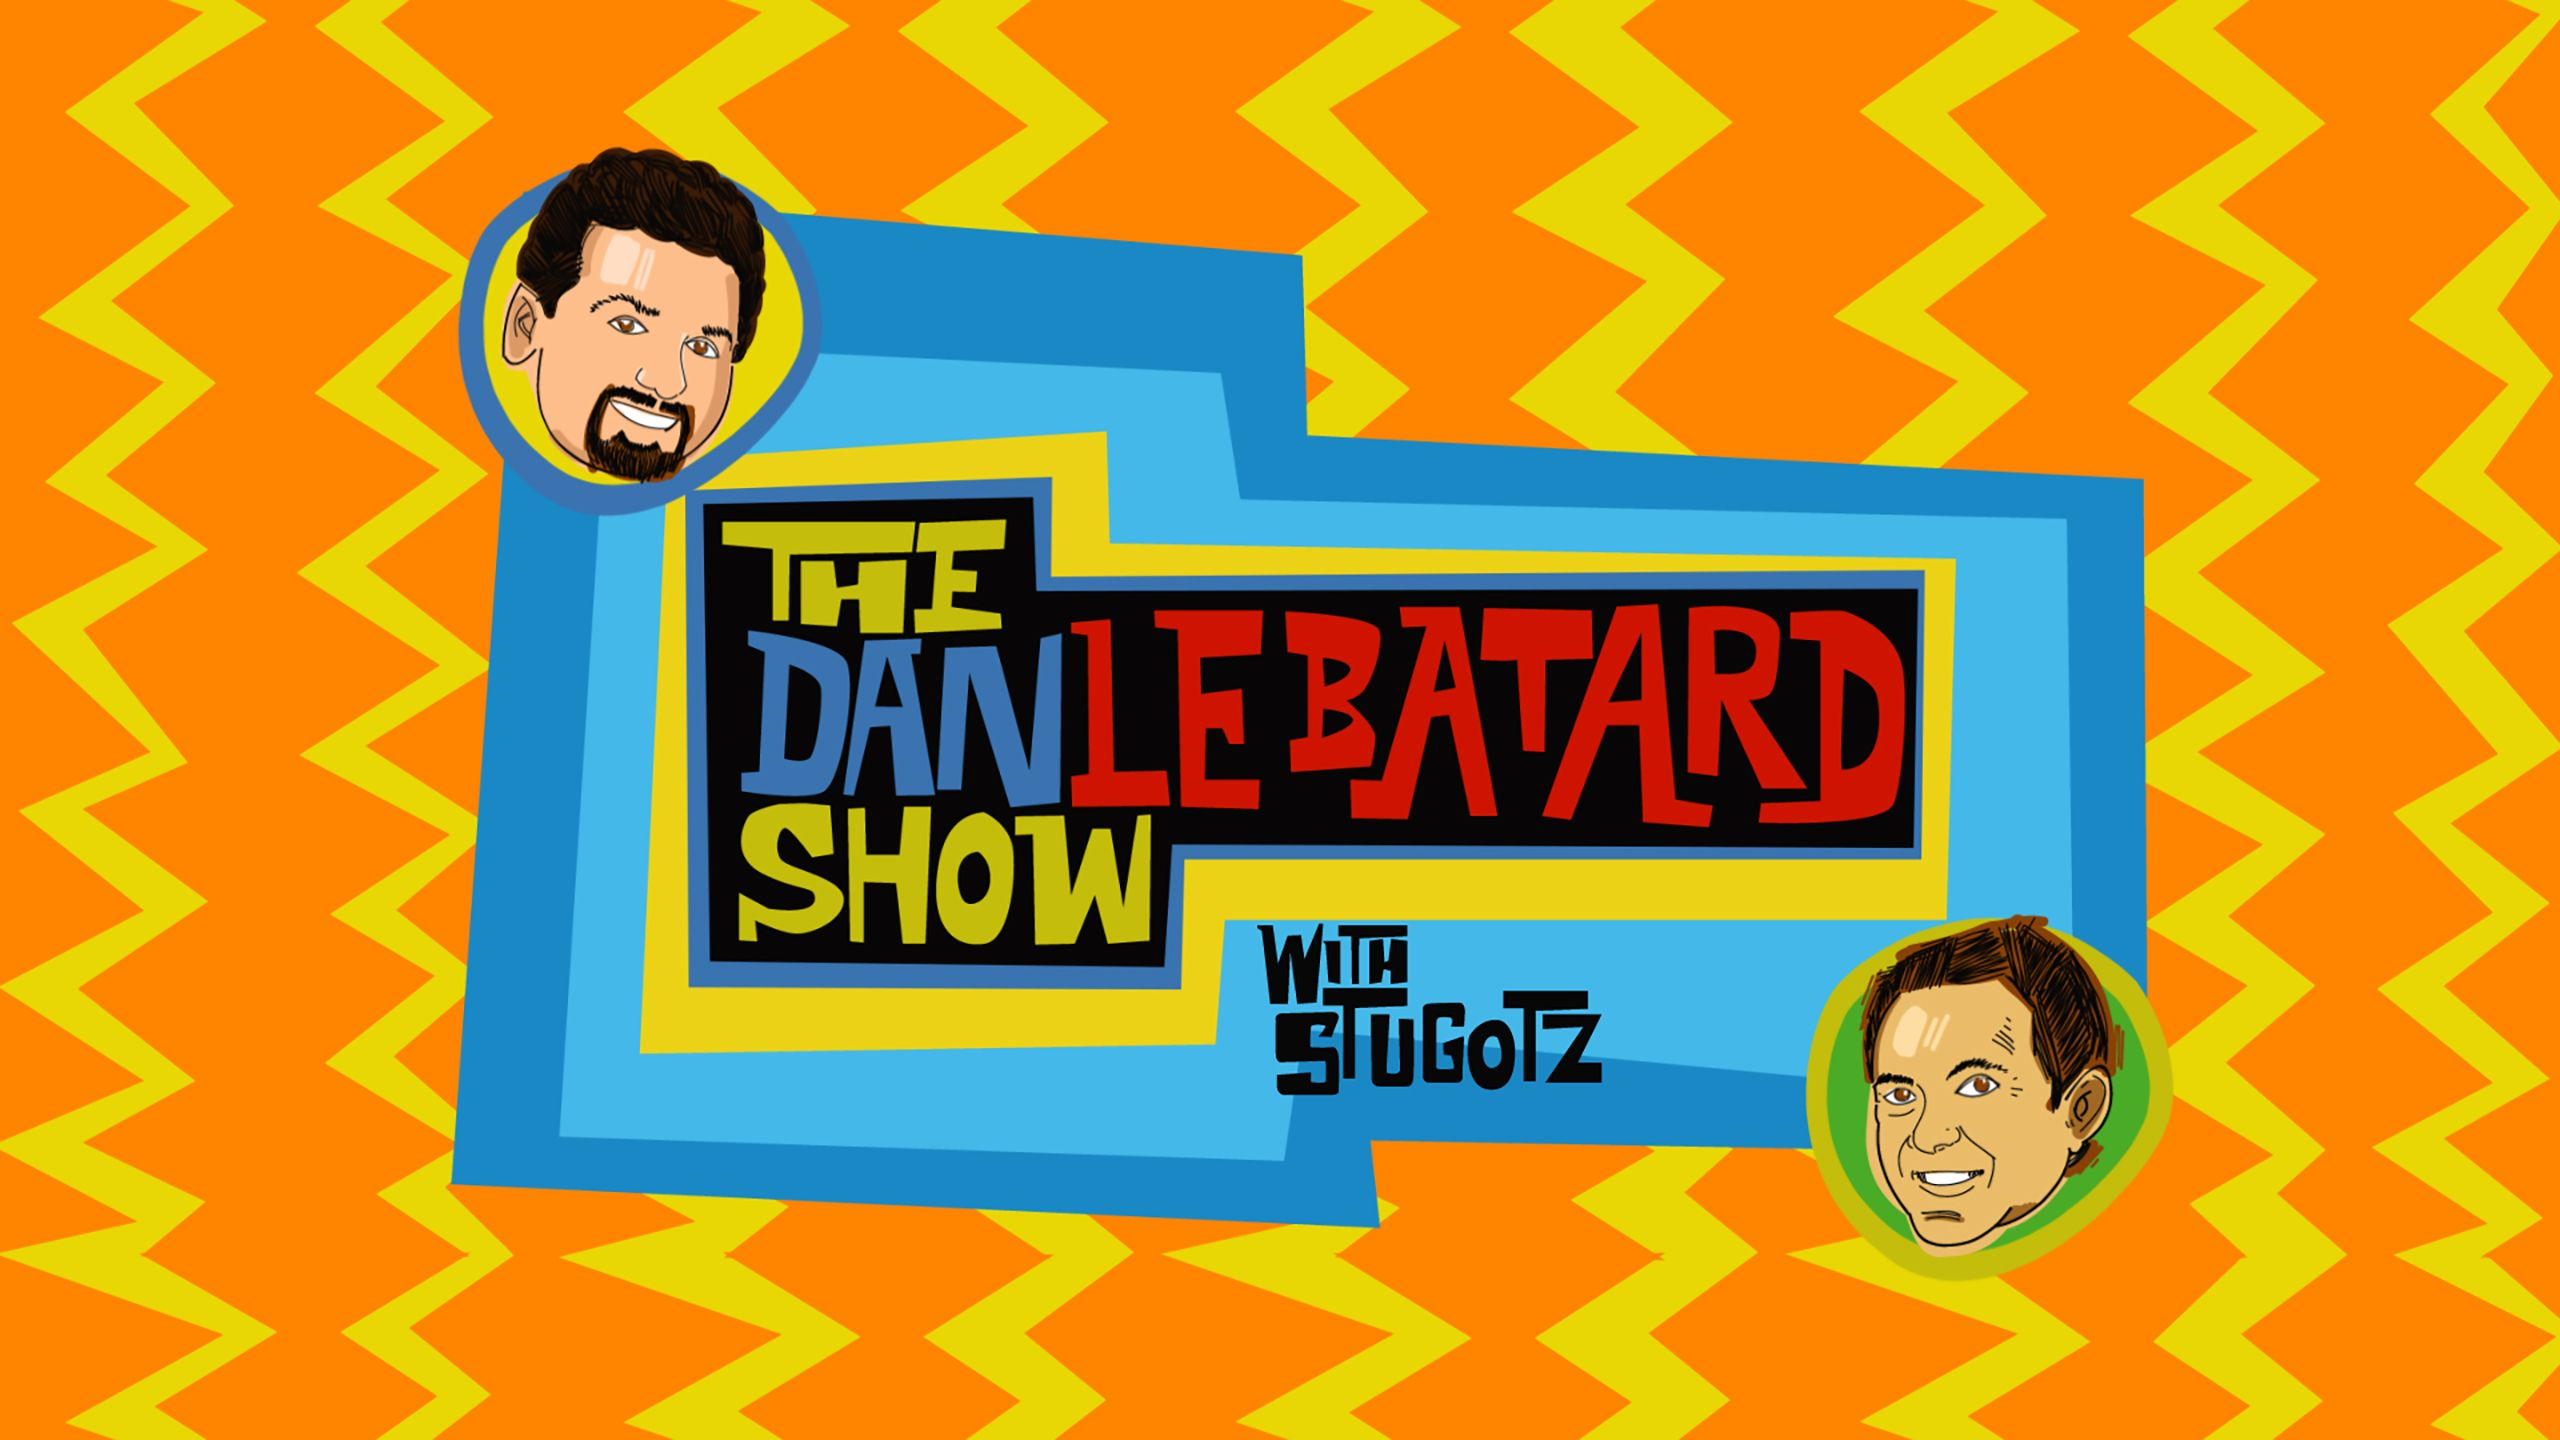 Wed, 11/22 - The Dan Le Batard Show with Stugotz Presented by Progressive